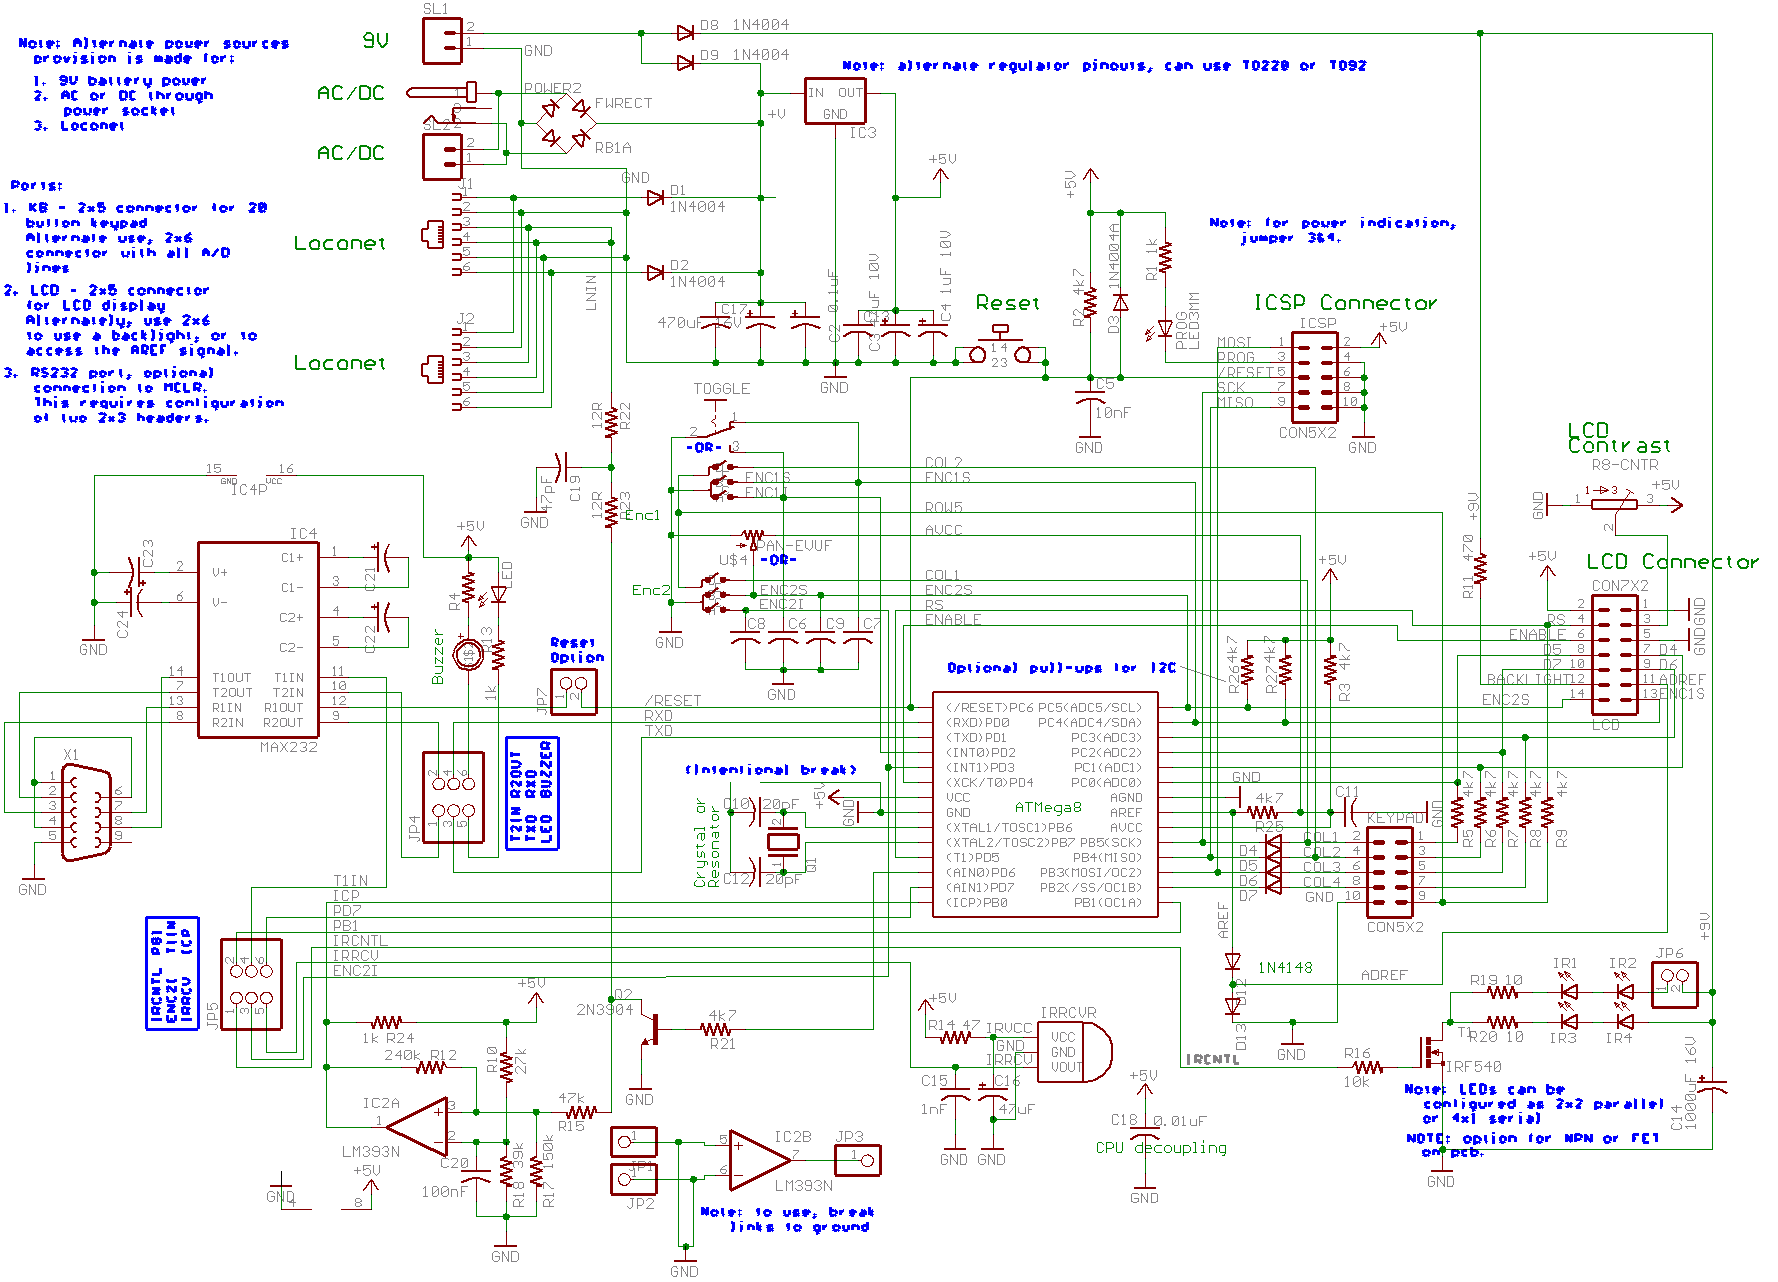 sma15 new dual acessory multifunctionl 17 channel configurable the schematic on the locodev board page will give you a sense of what hardware is required to interface to the loconet